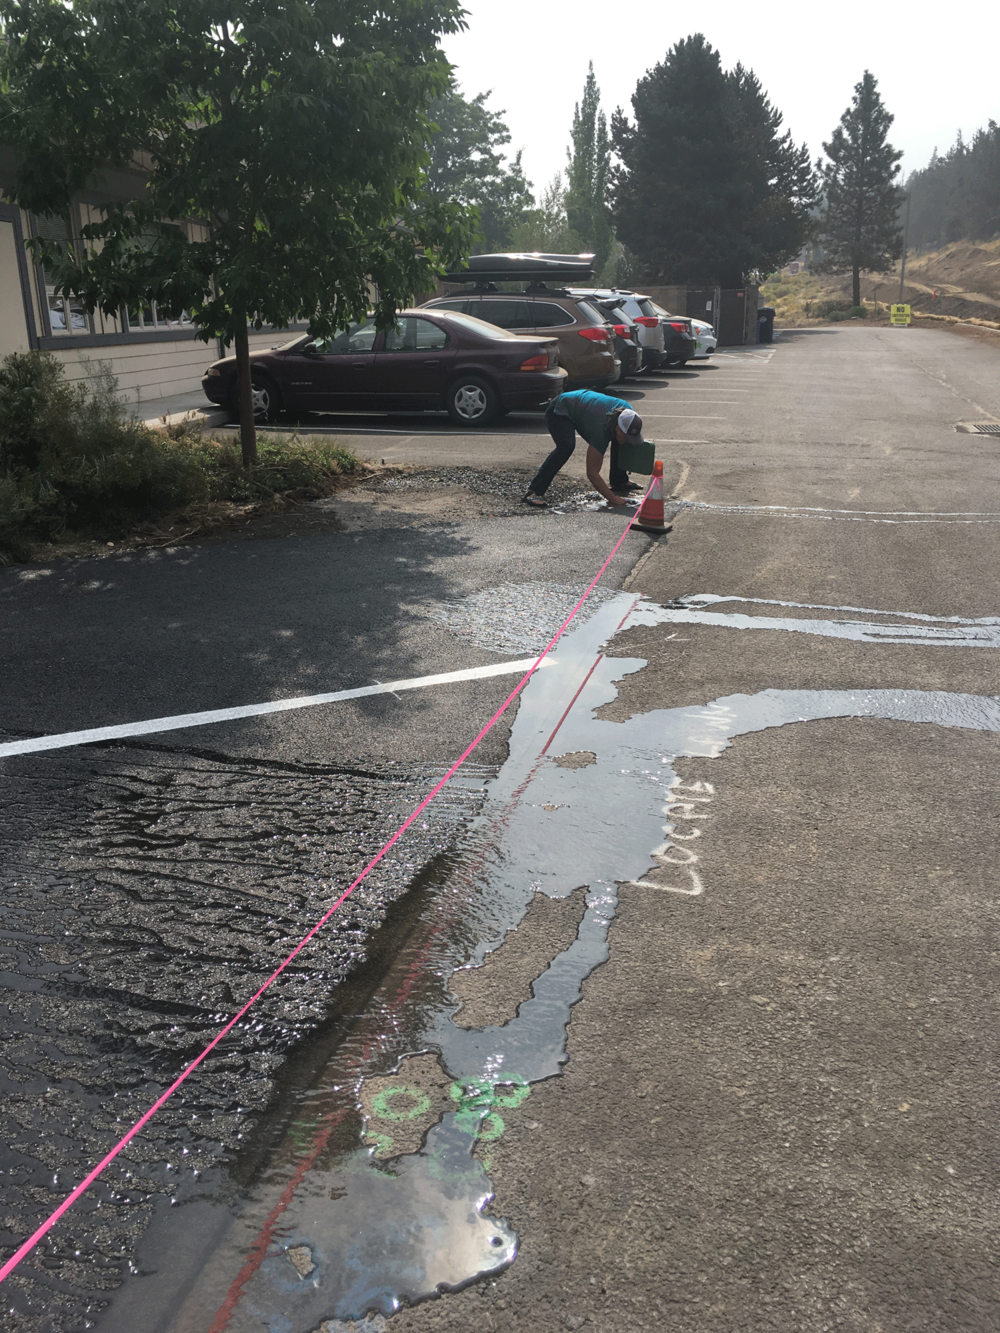 There was more than just one sprinkler head that was affected by the new asphalt paving.  an irrigation consultation to locate sprinklers and advise on how to cap them would have been a fraction of the time and money it took to locate the paved-over sprinklers and to make the necessary repairs.